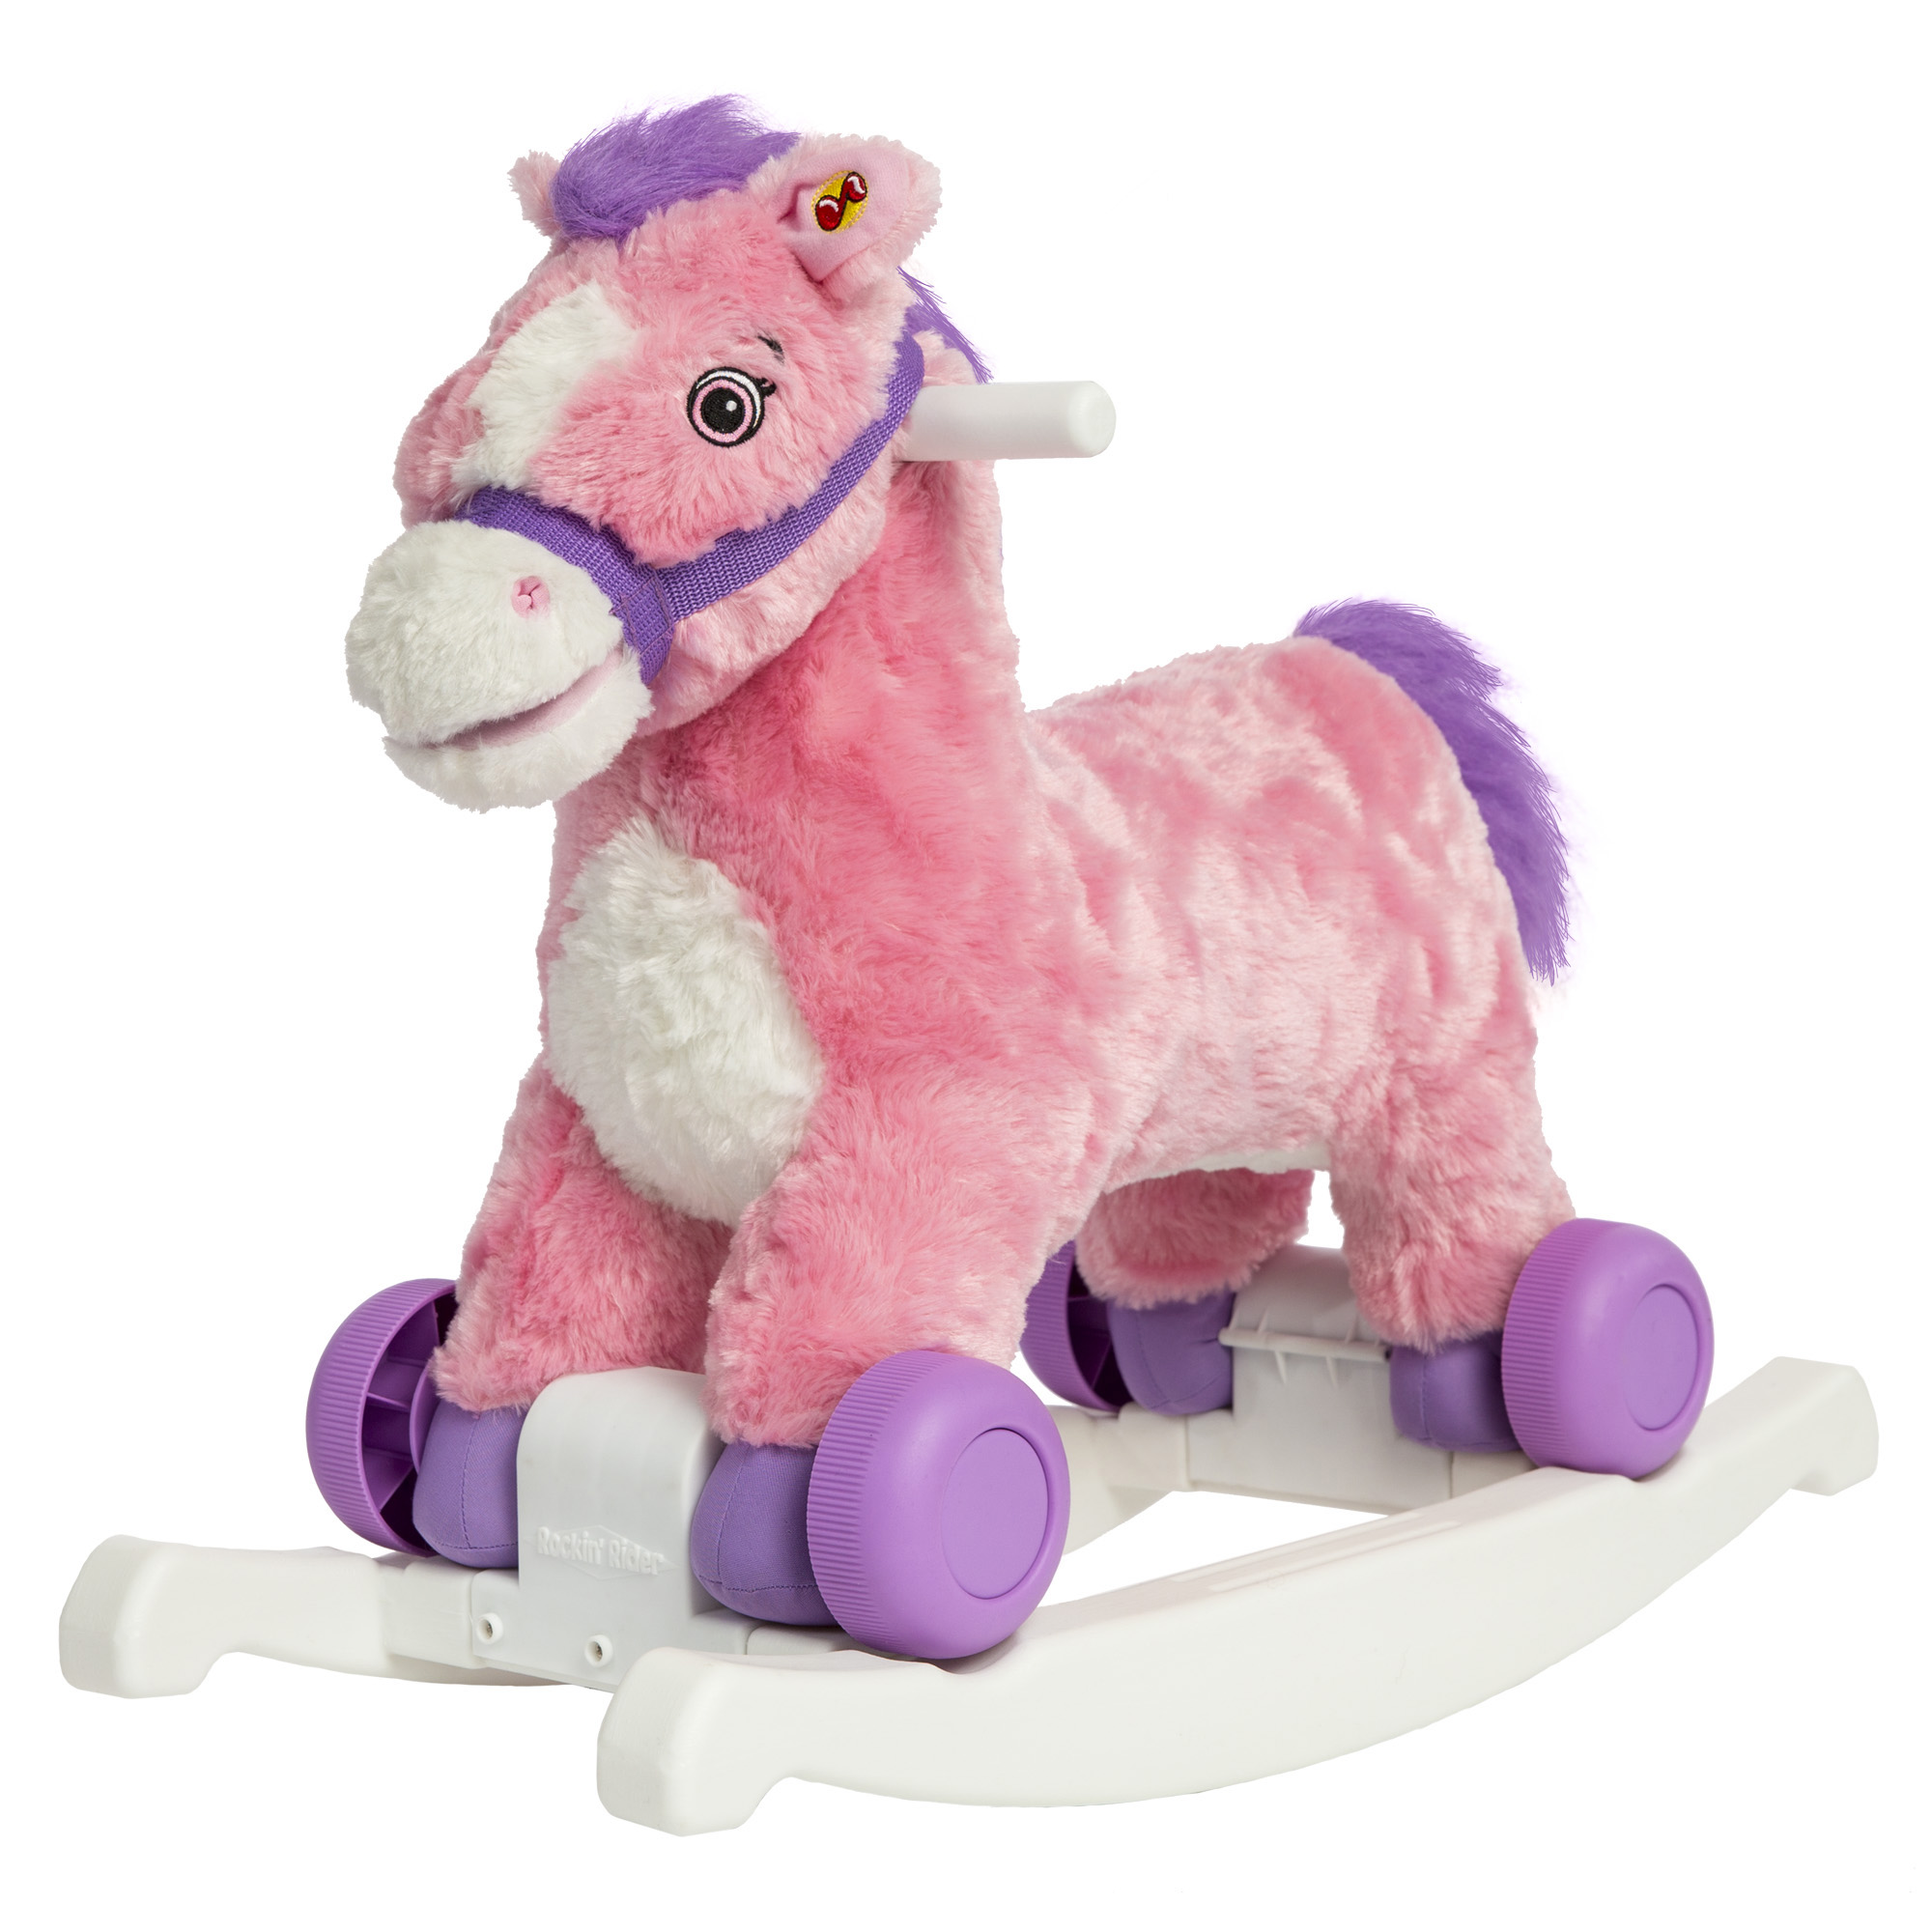 Rockin' Rider Candy 2-in-1 Rocking Pony